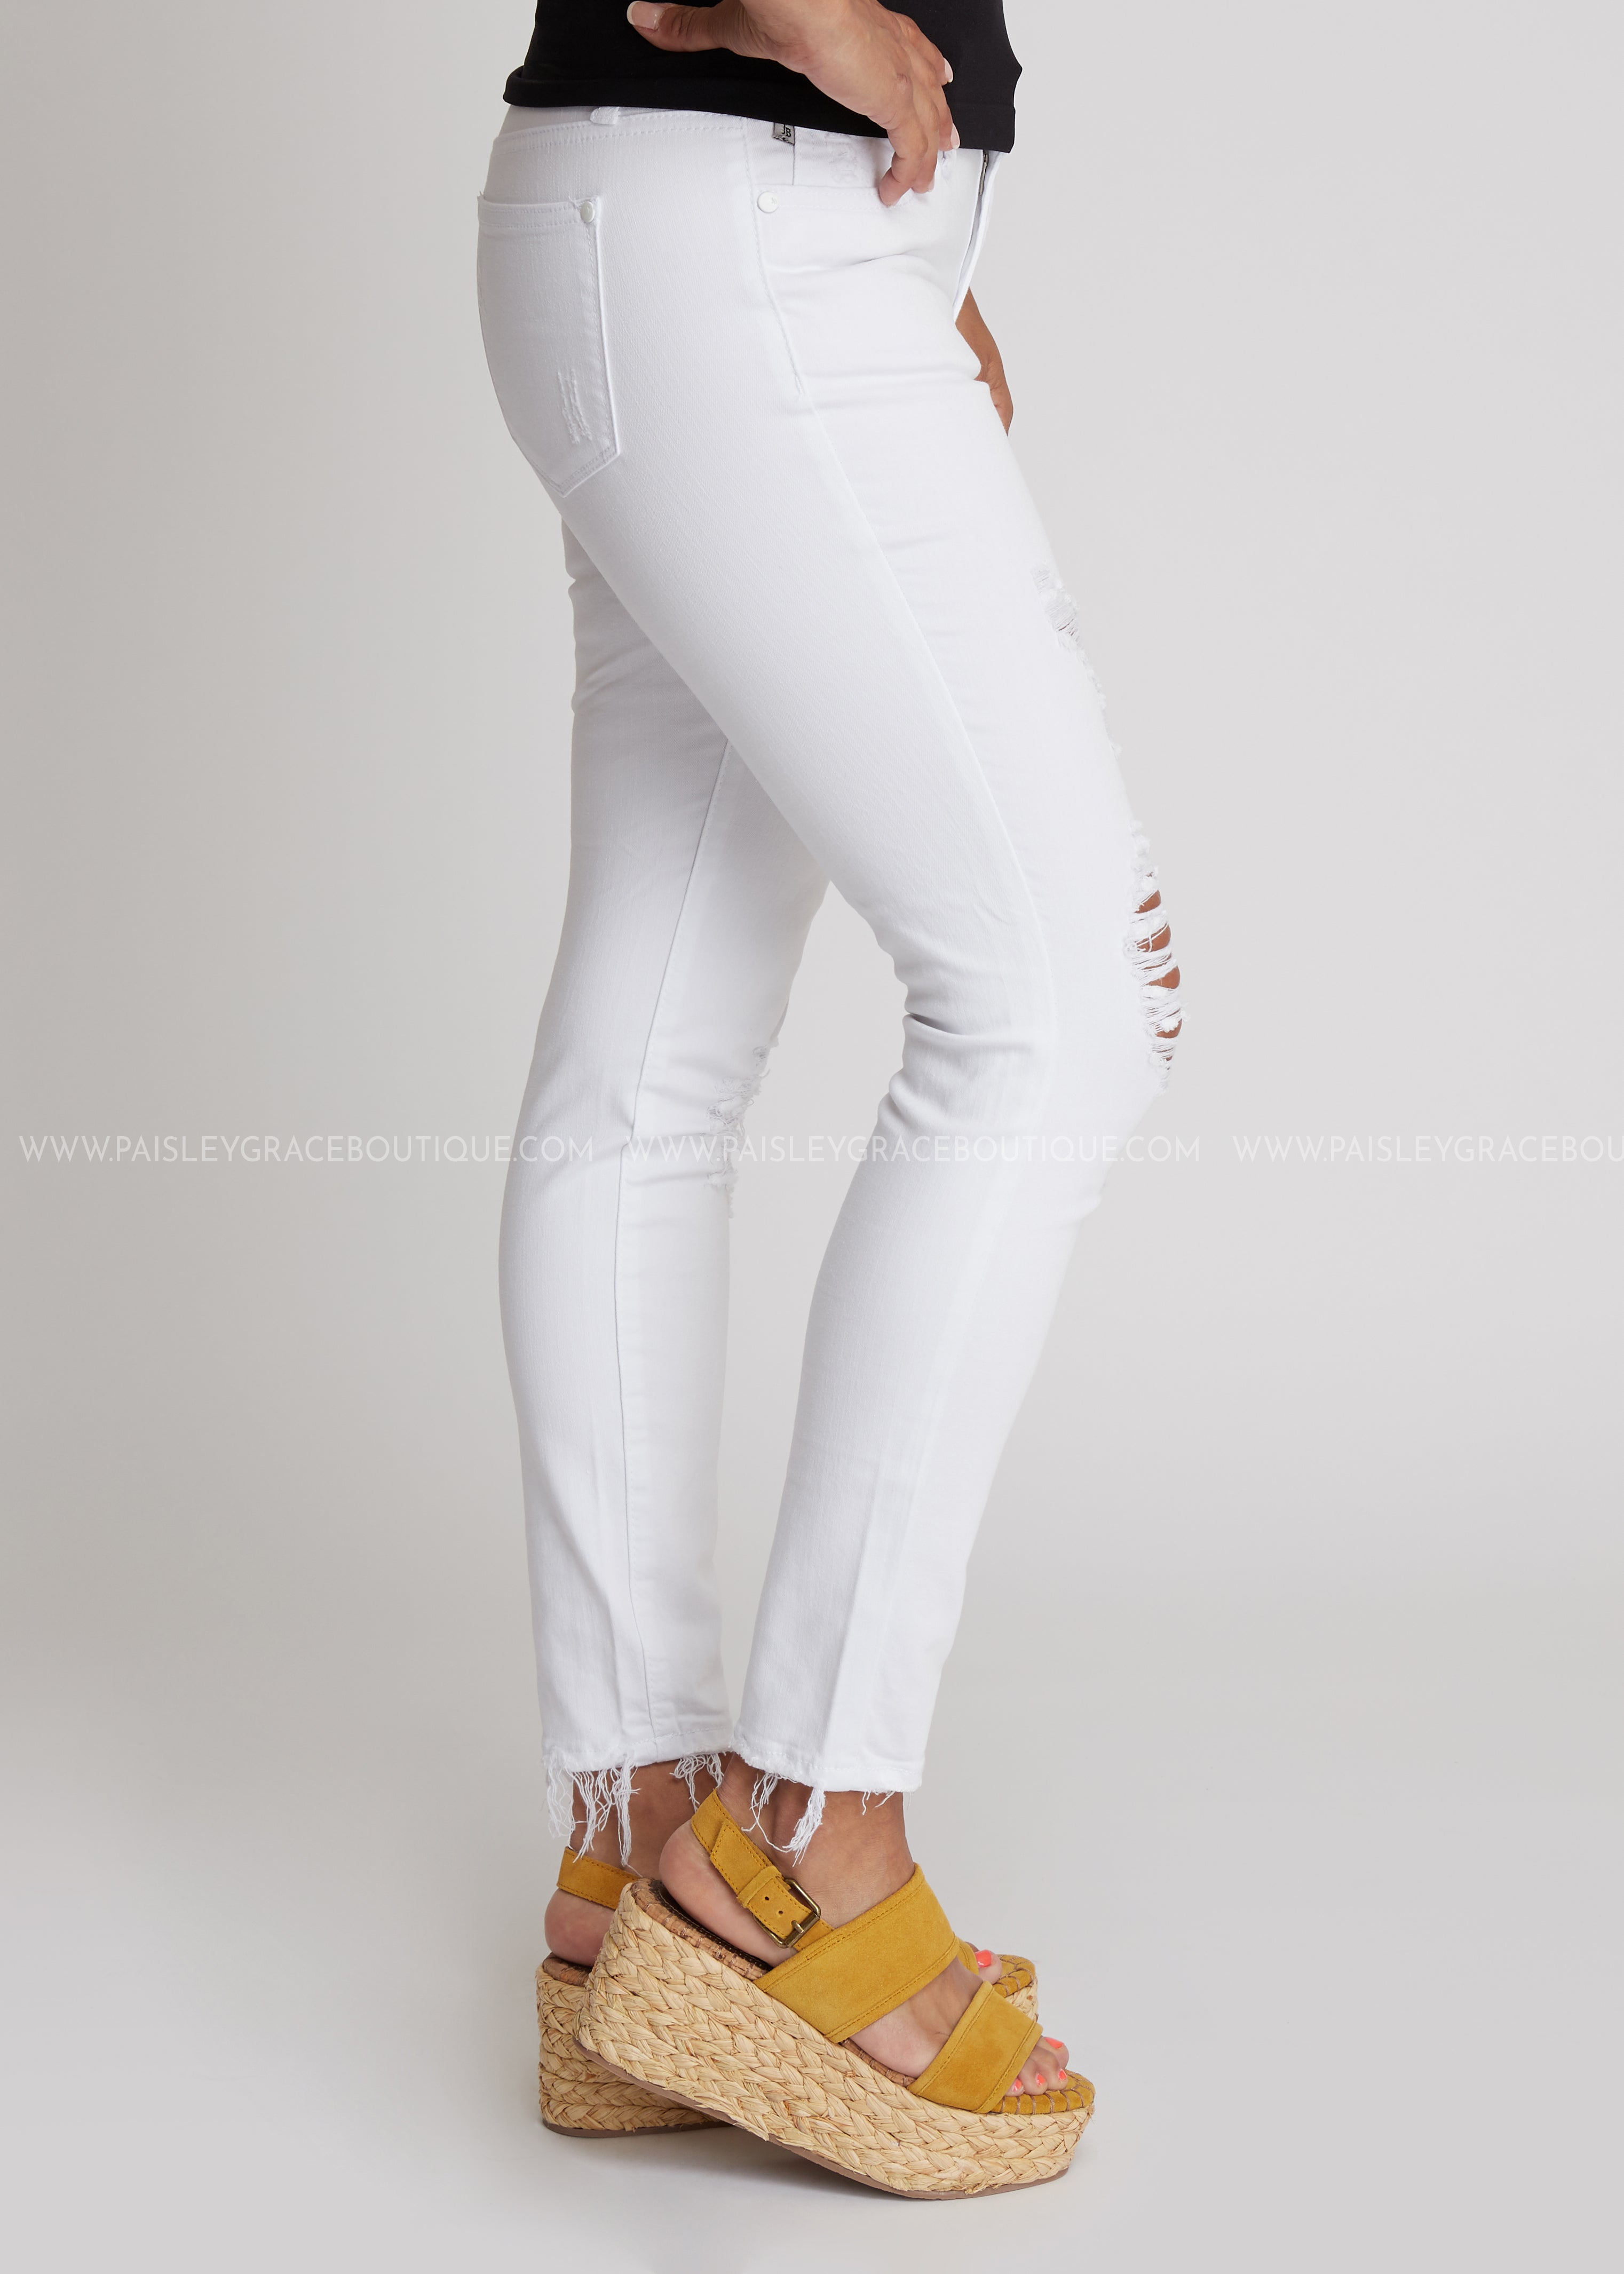 Roxie Distressed White Jeans